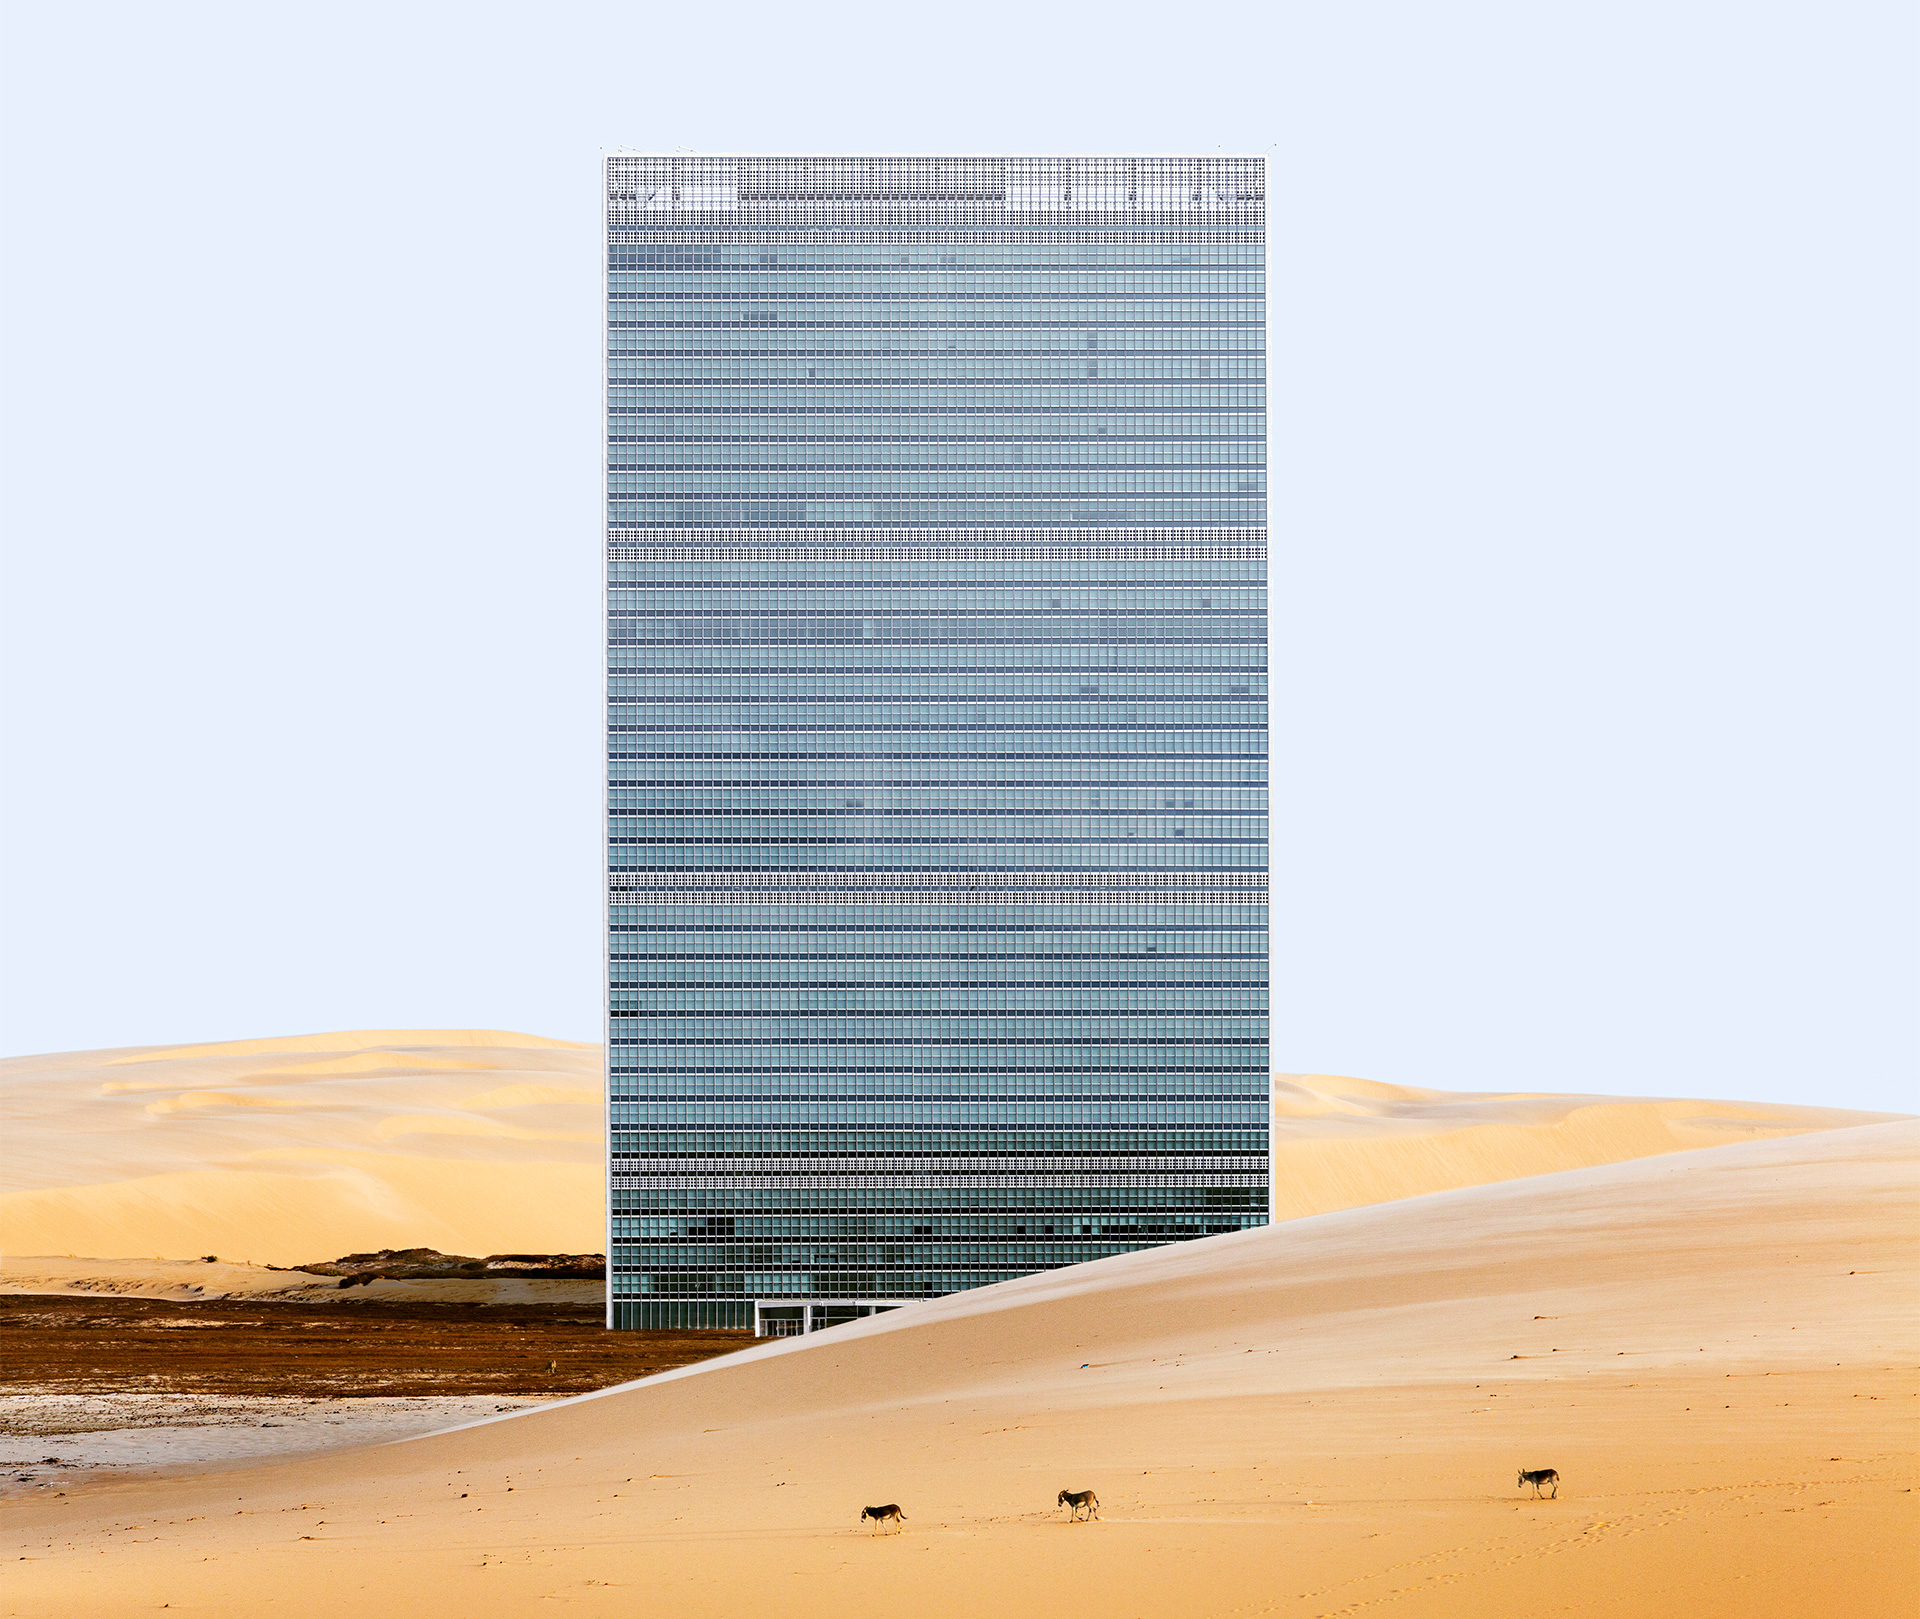 Misplaced - Headquarters of the United Nations| Misplaced Series | Anton Repponen | STIR